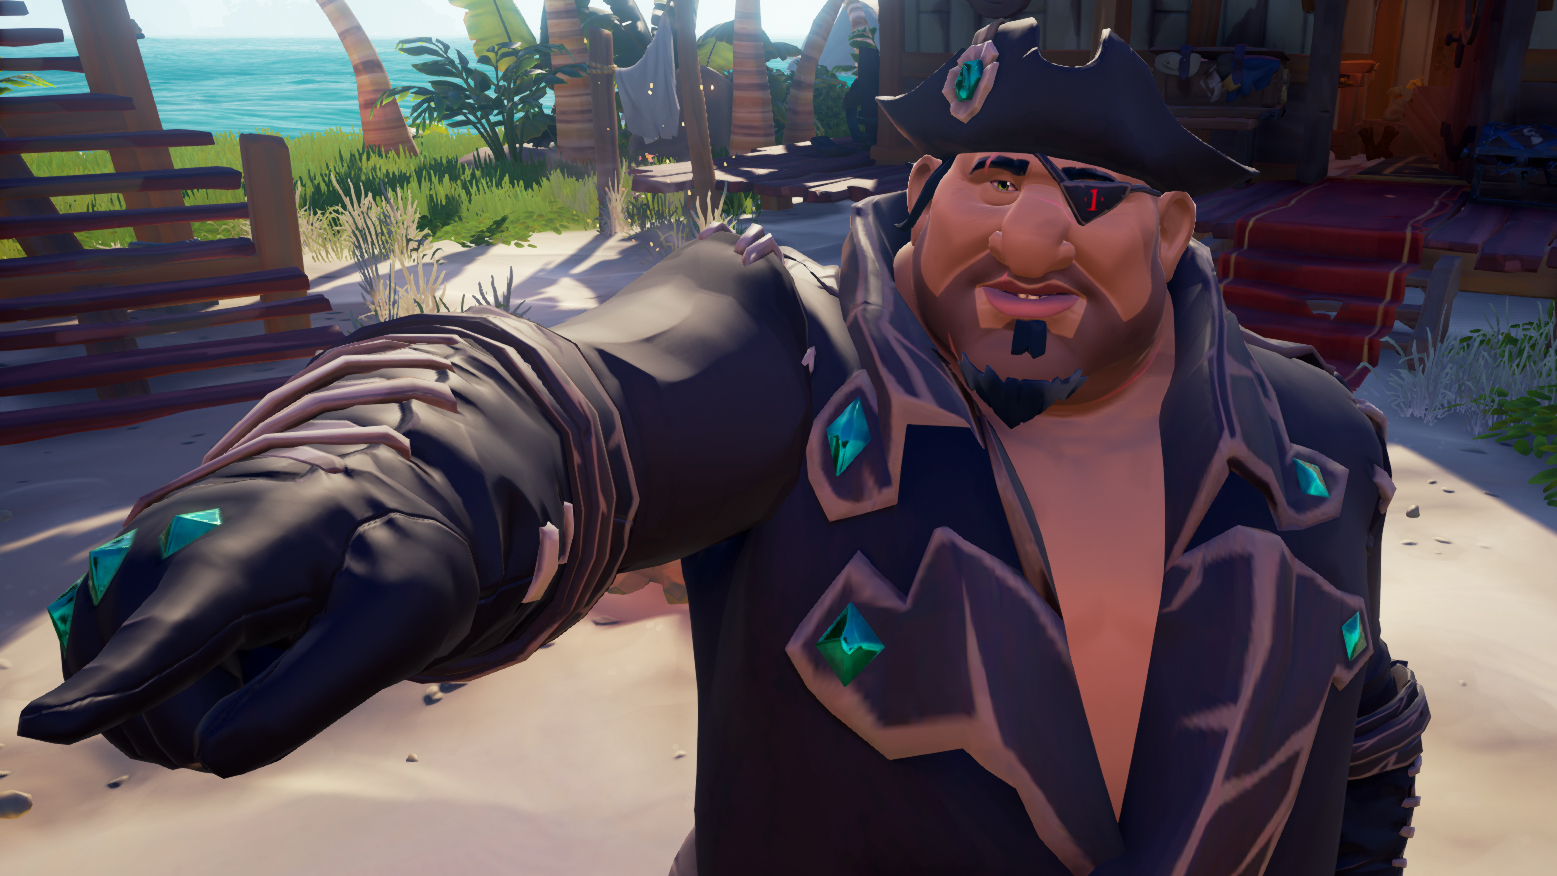 Sea of Thieves players can invite friends to play free for a week